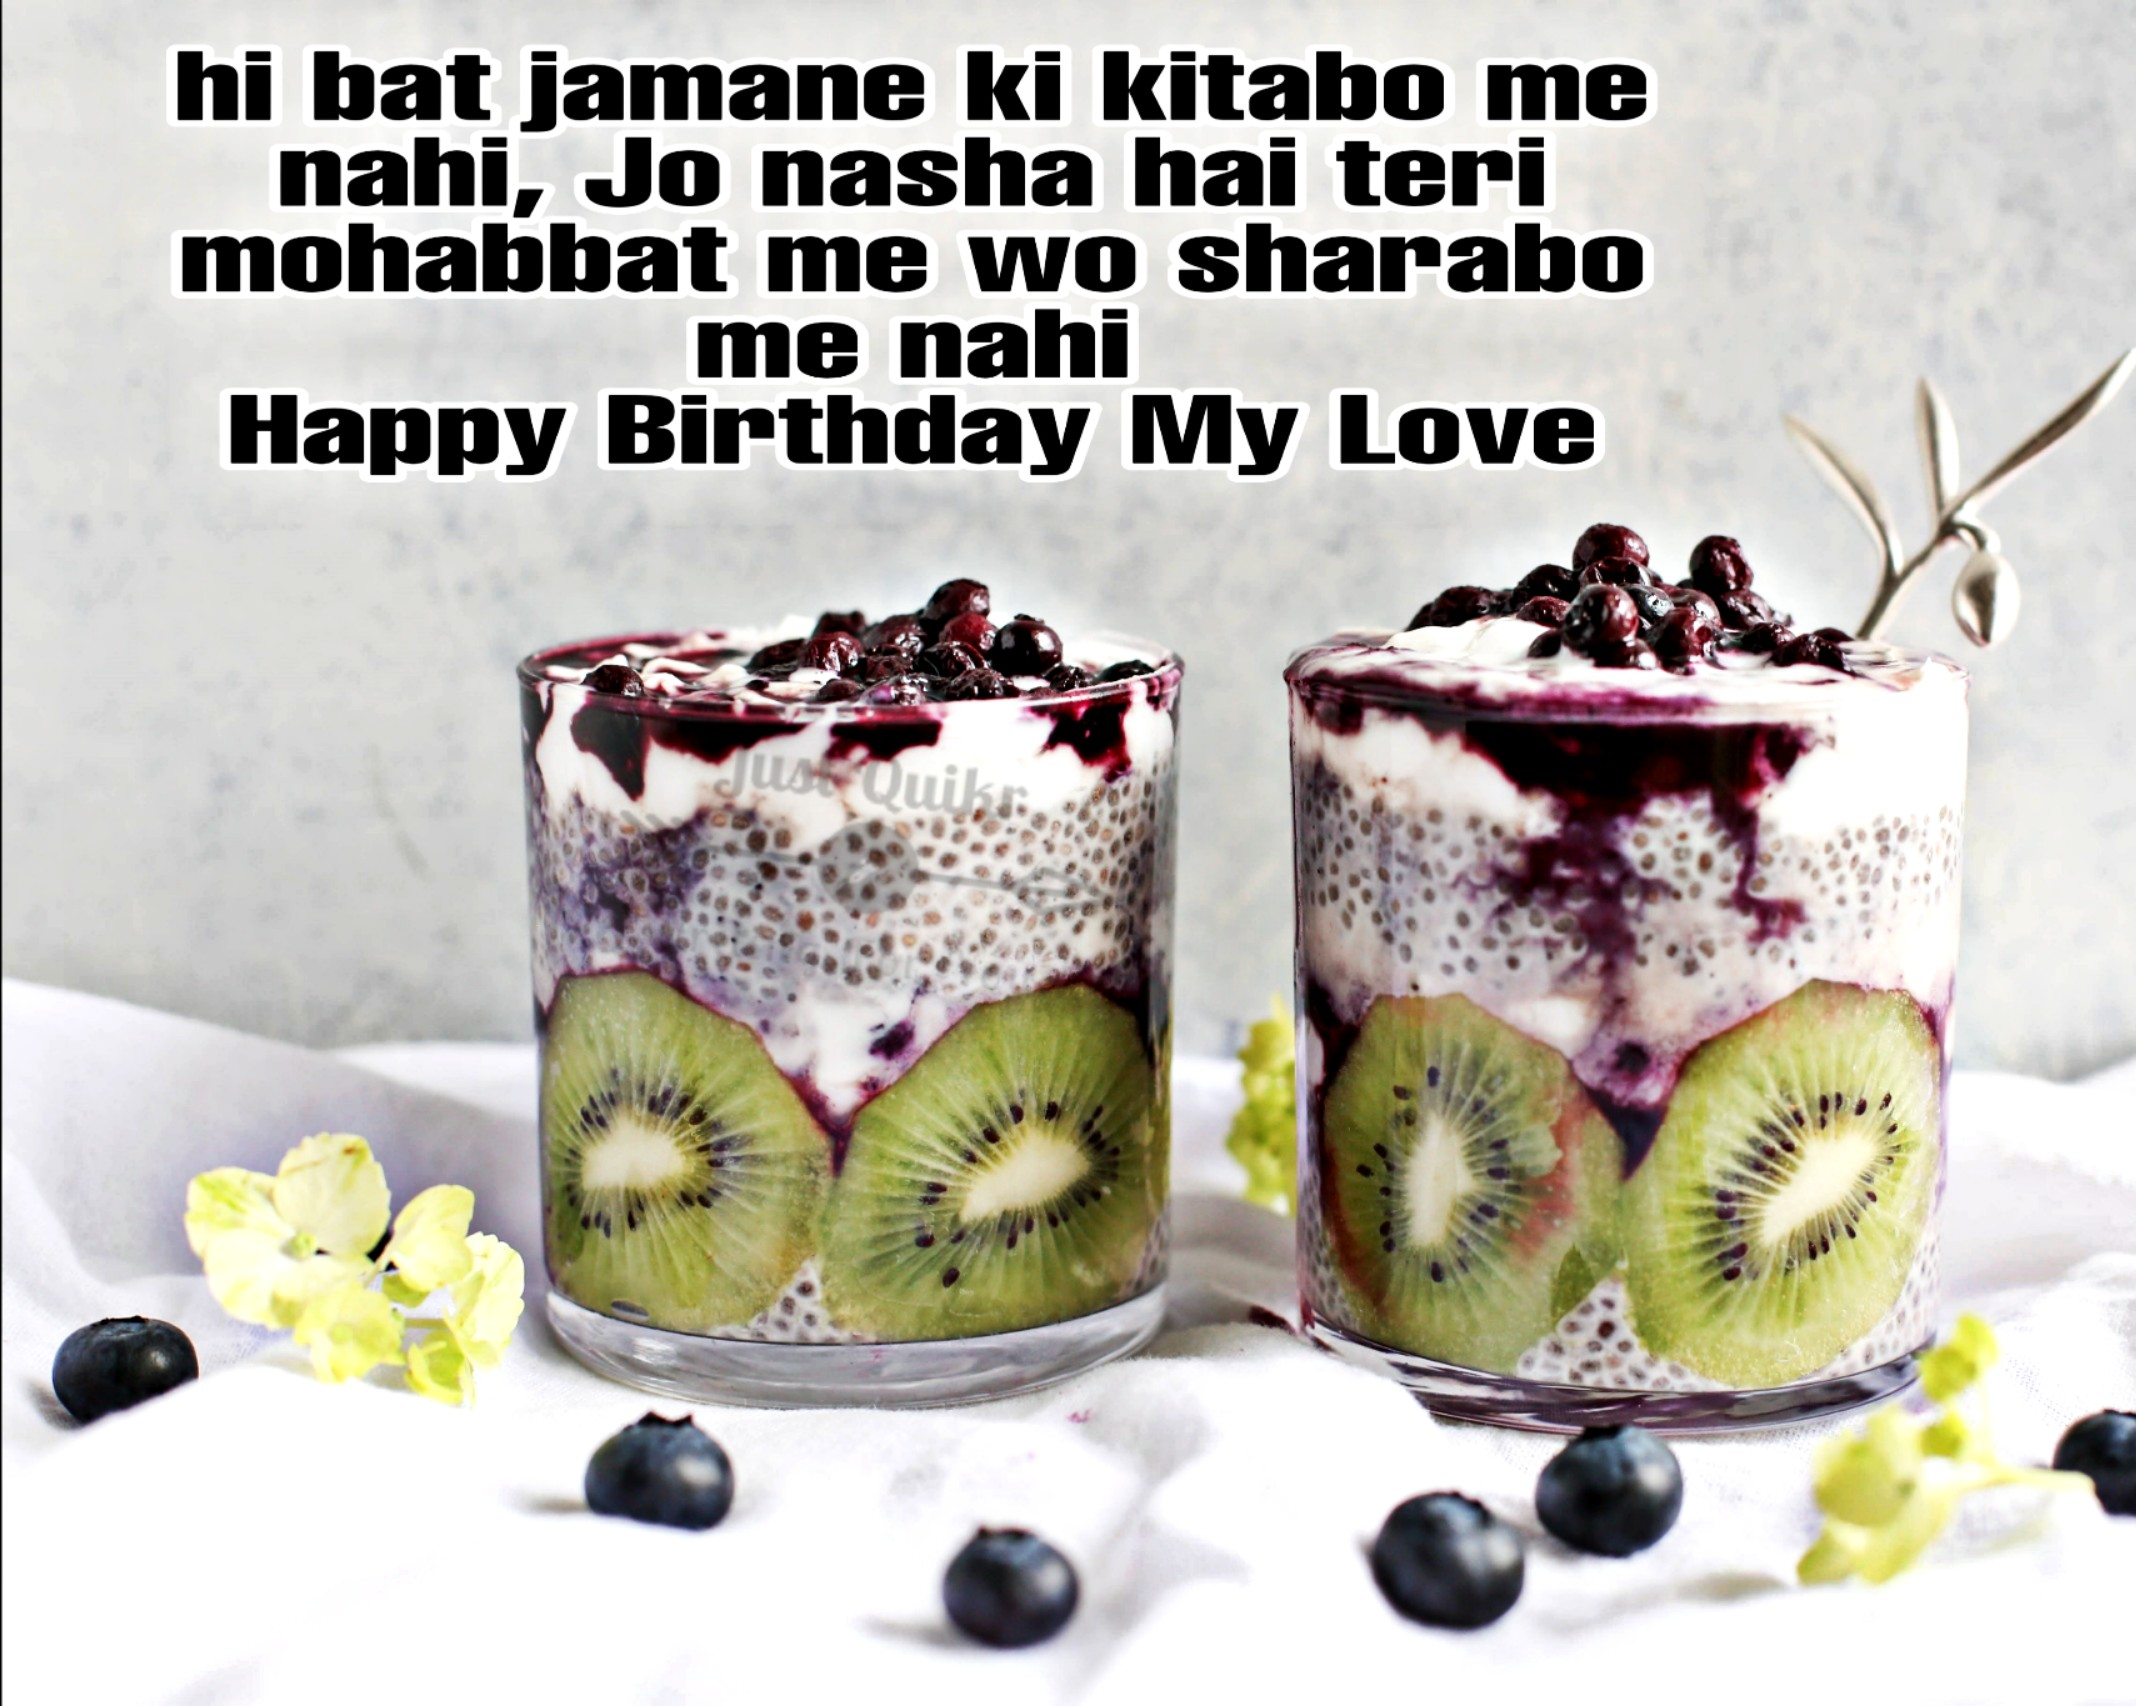 Happy Birthday Cake HD Pics Images with Shayari Sayings for Couple